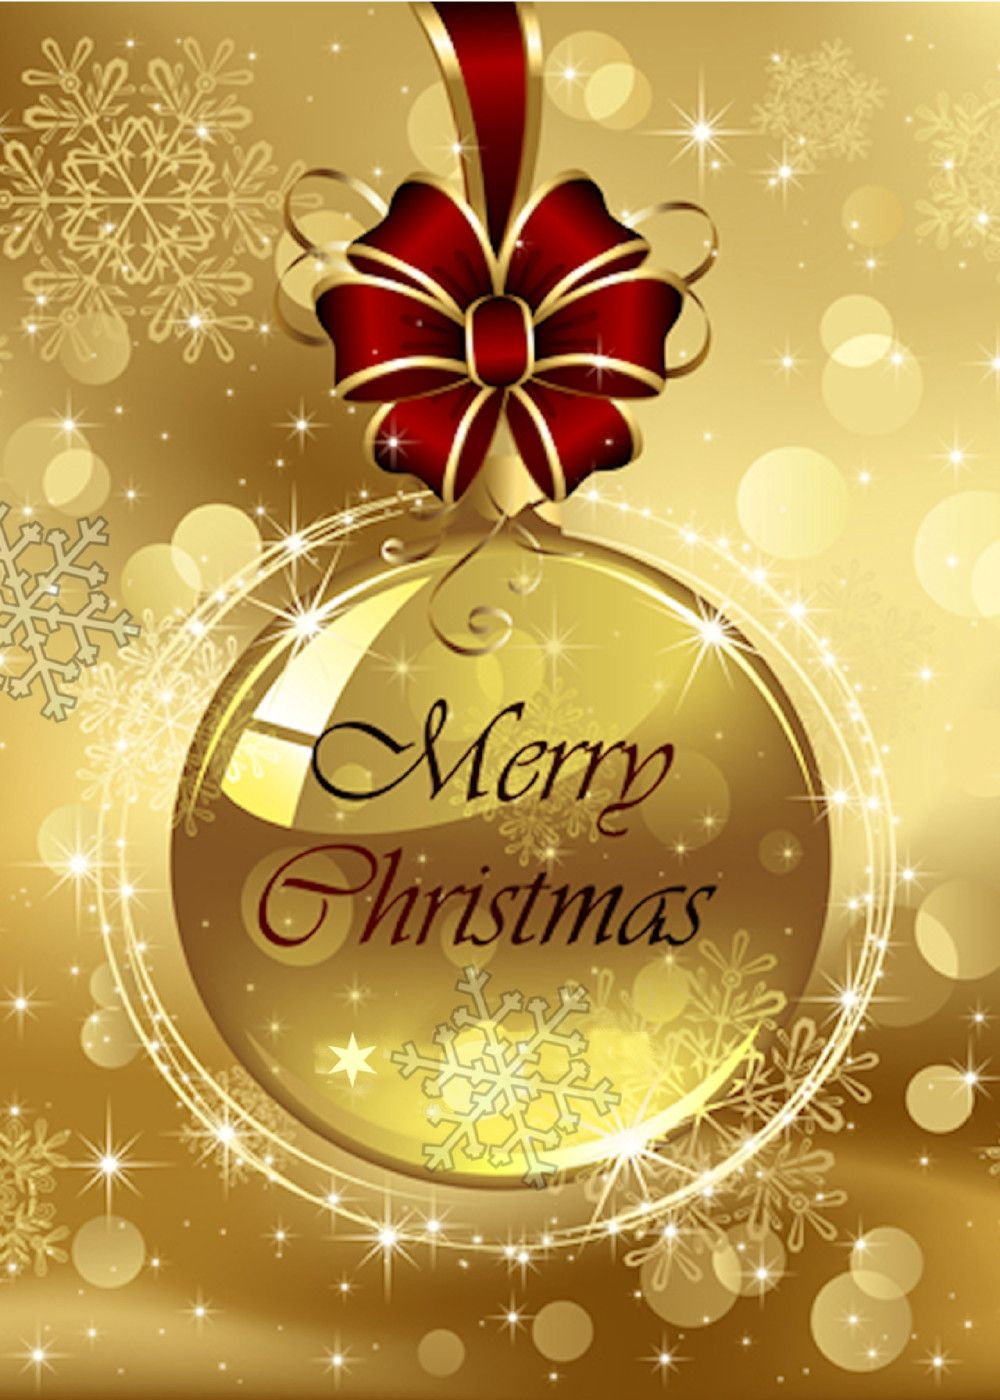 send a real christmas greeting card in the postal mail for